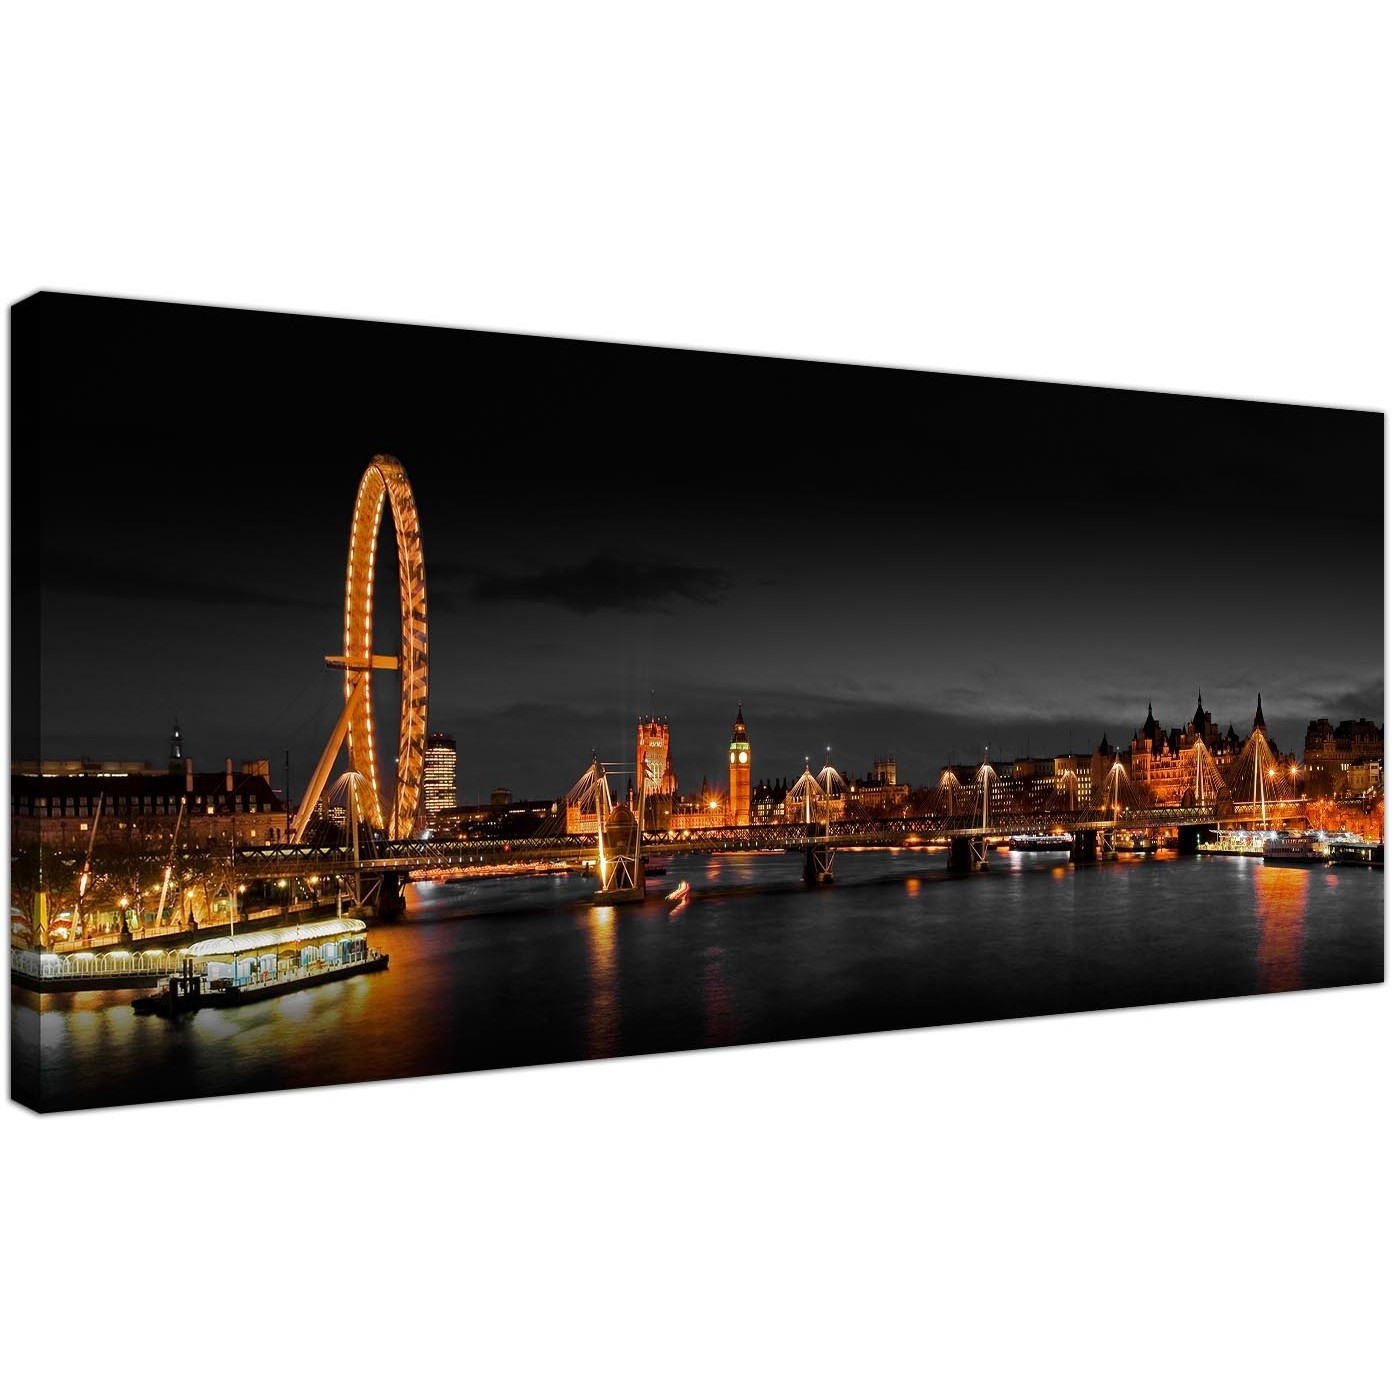 Panoramic Canvas Wall Art Of London Eye At Night For Your Living Room In Latest Panoramic Canvas Wall Art (View 8 of 15)